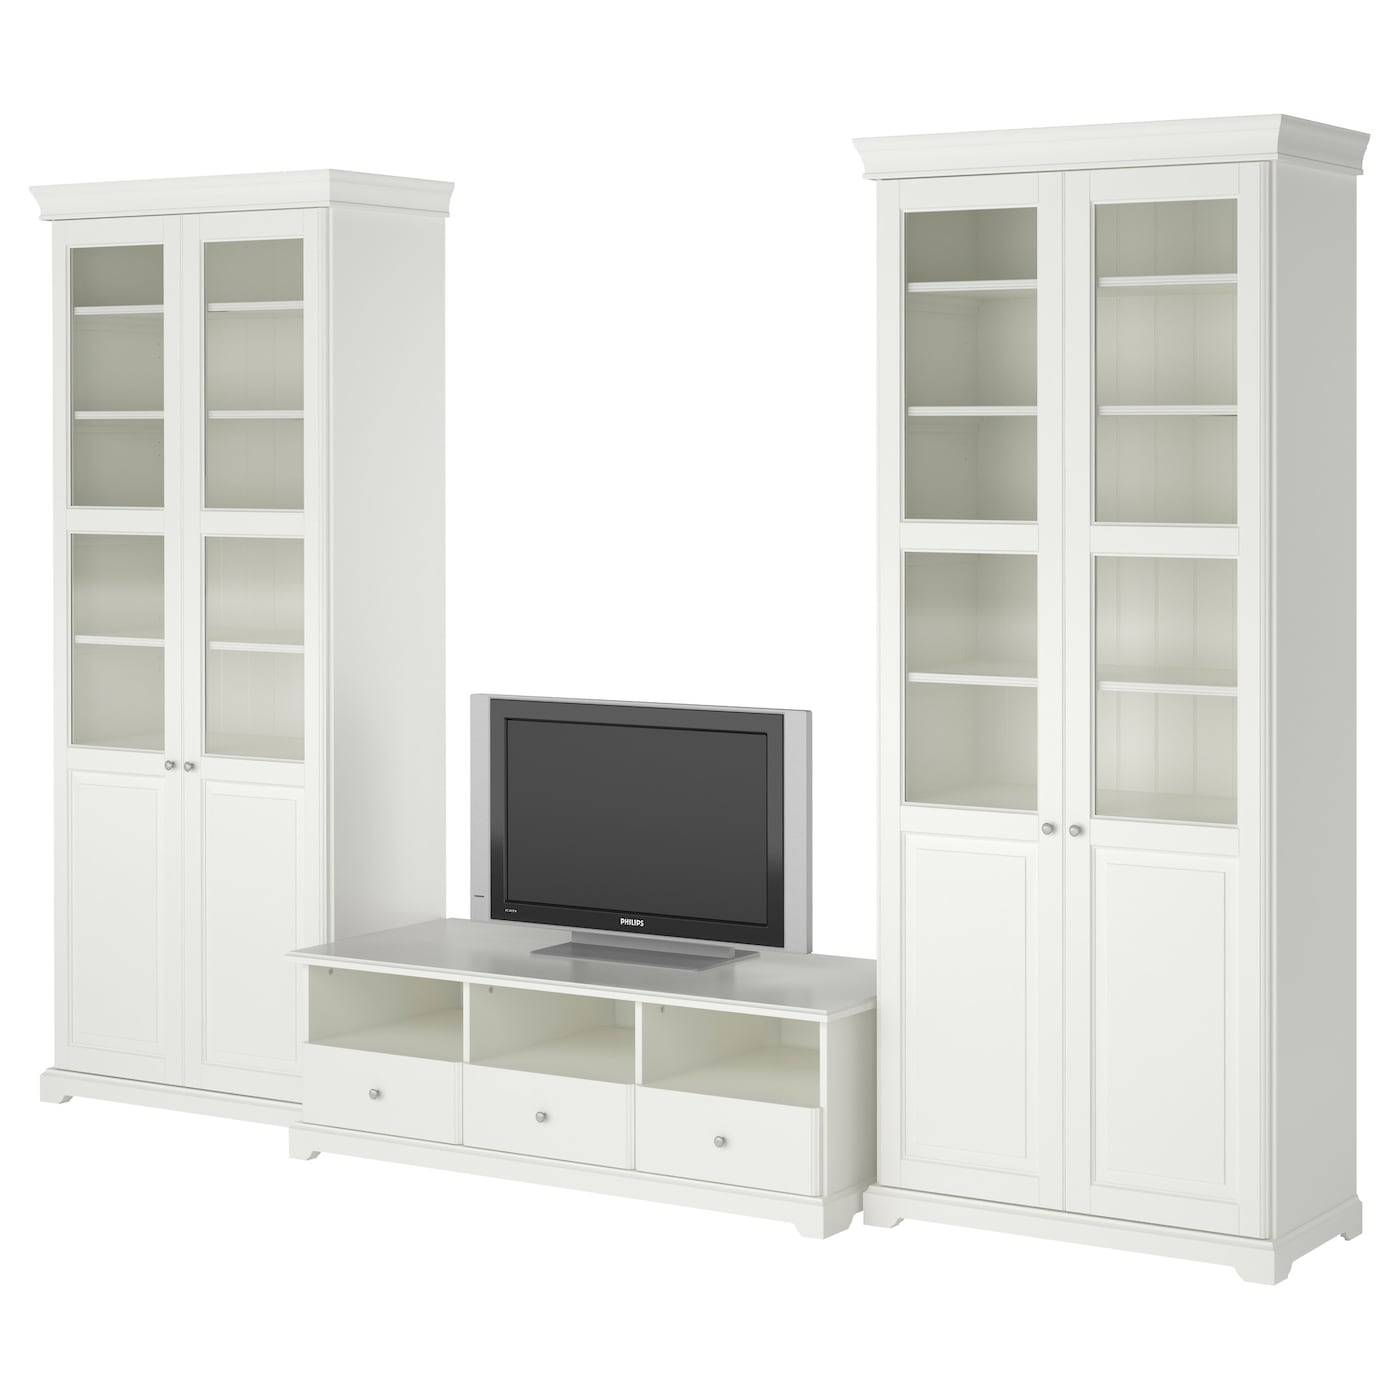 Charmant IKEA LIATORP TV Storage Combination Adjustable Feet; Stands Steady Also On  An Uneven Floor.